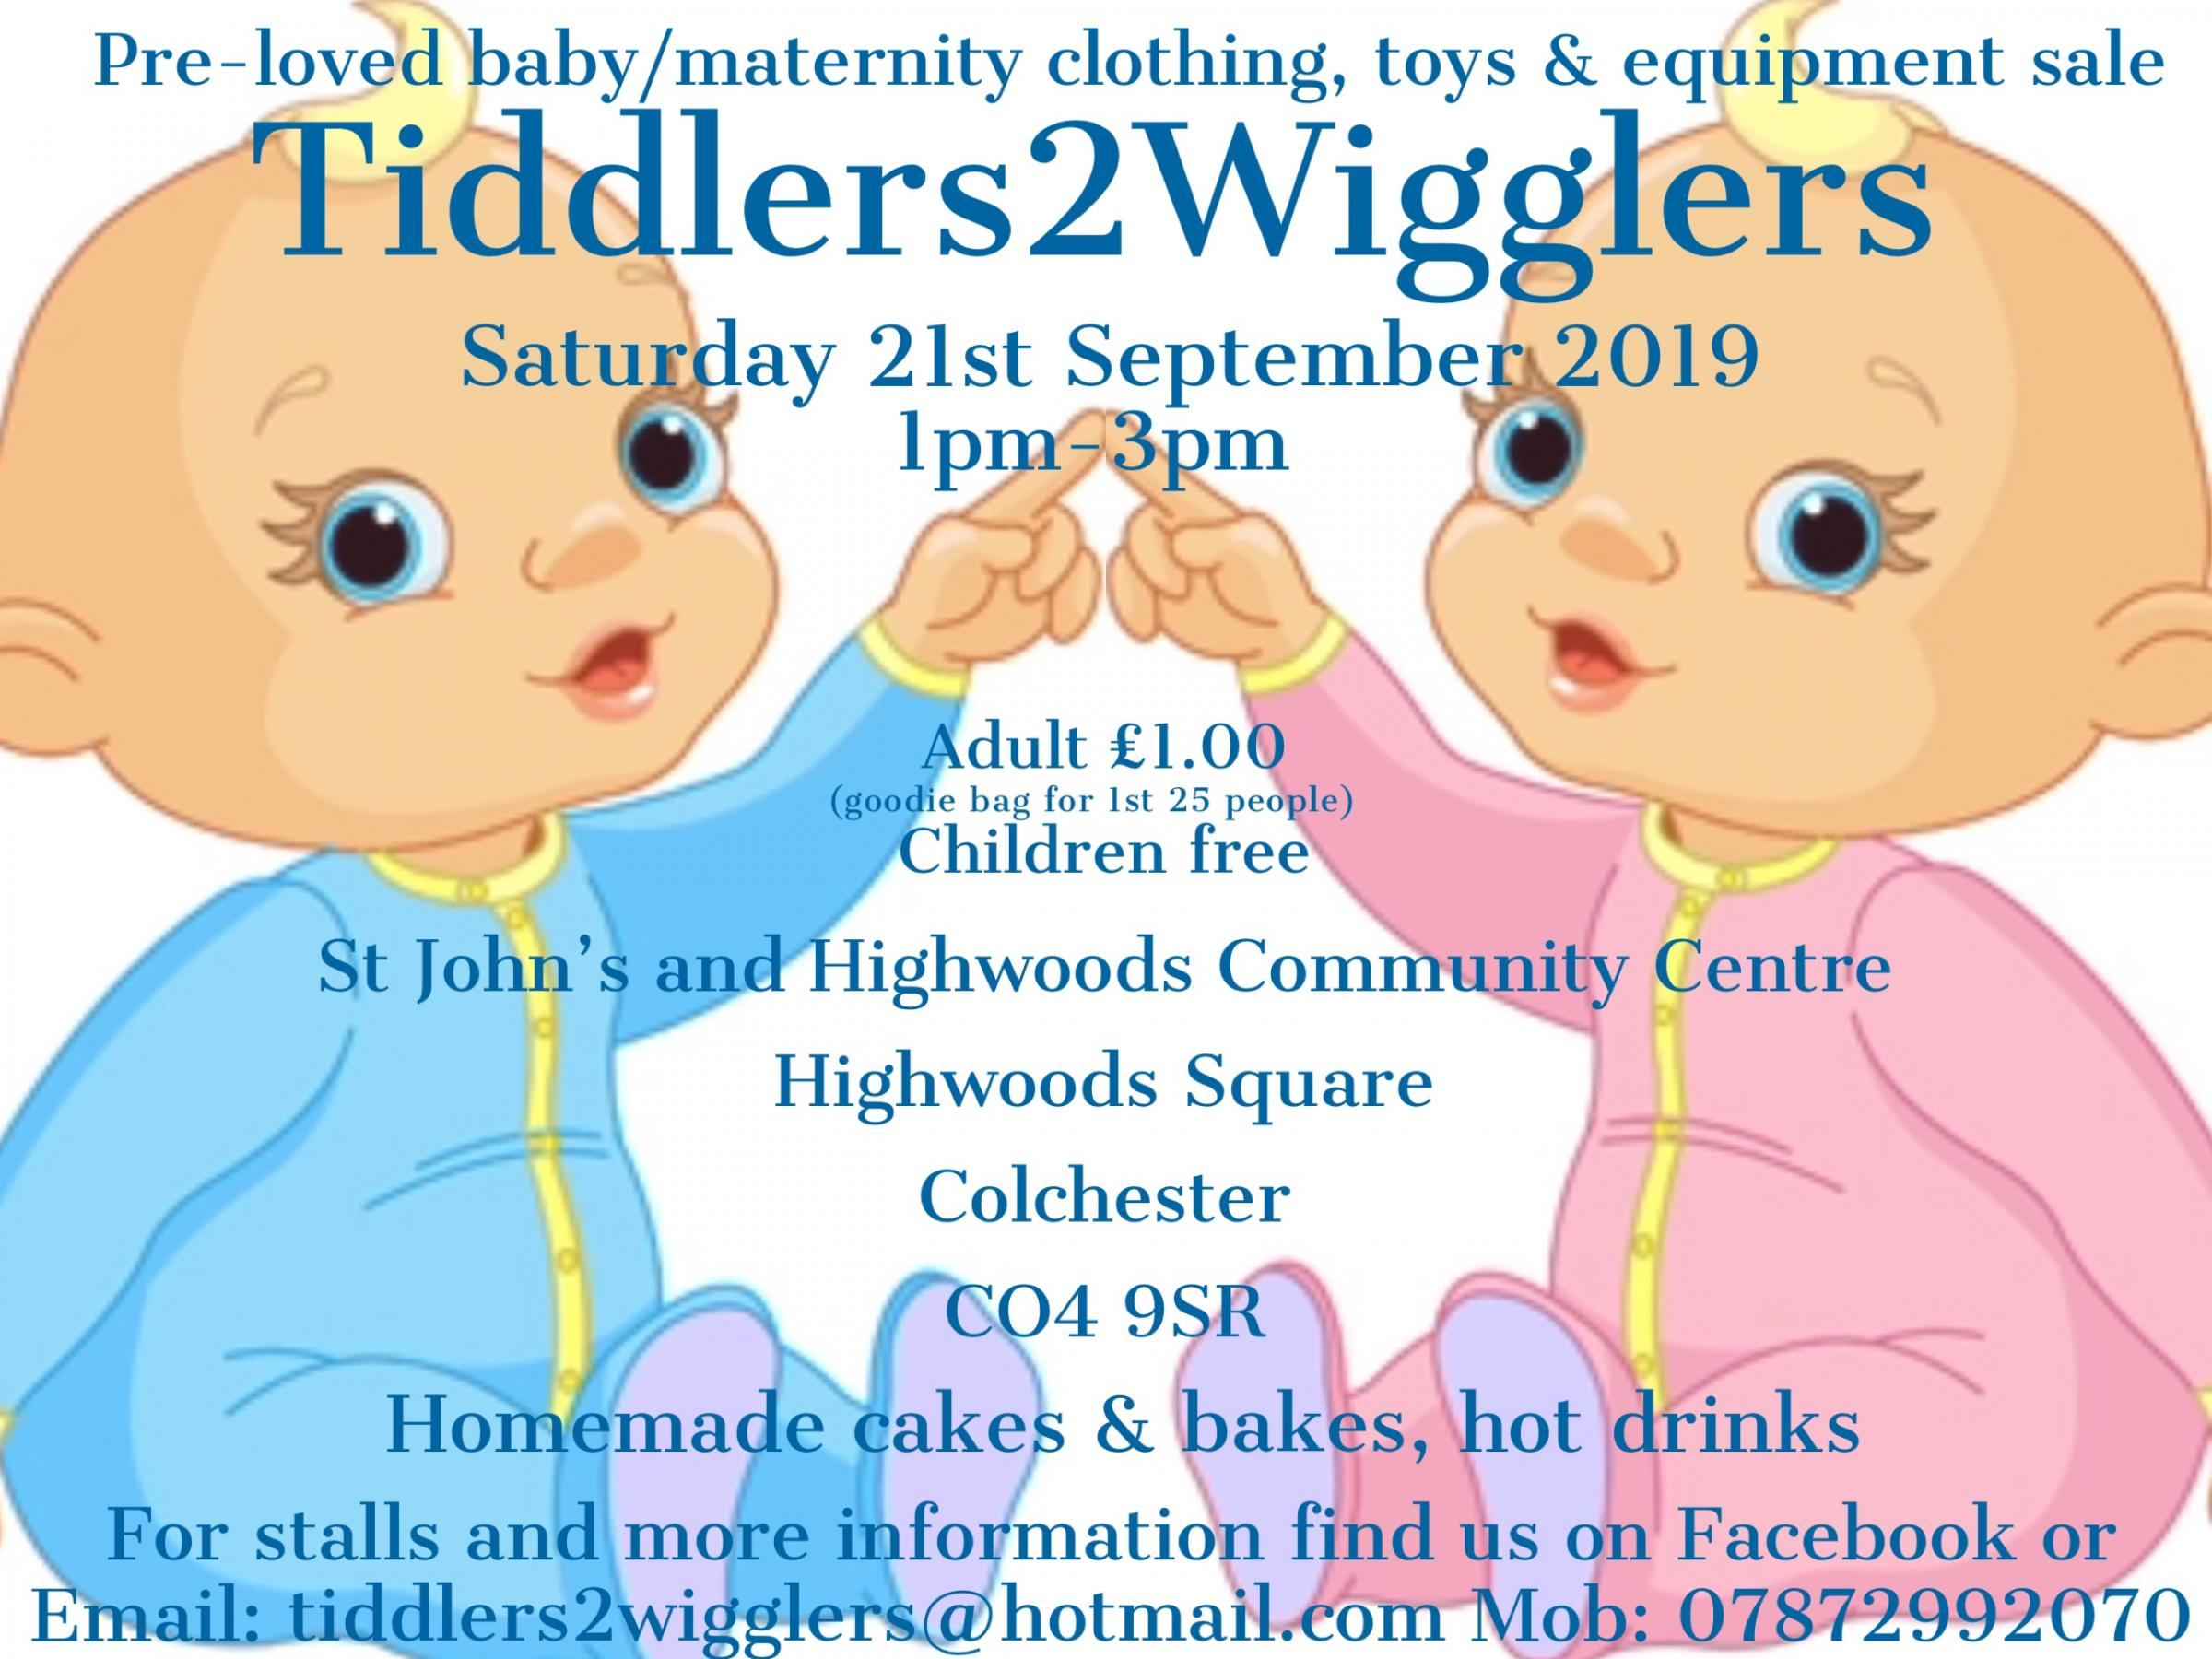 Tiddlers2Wigglers